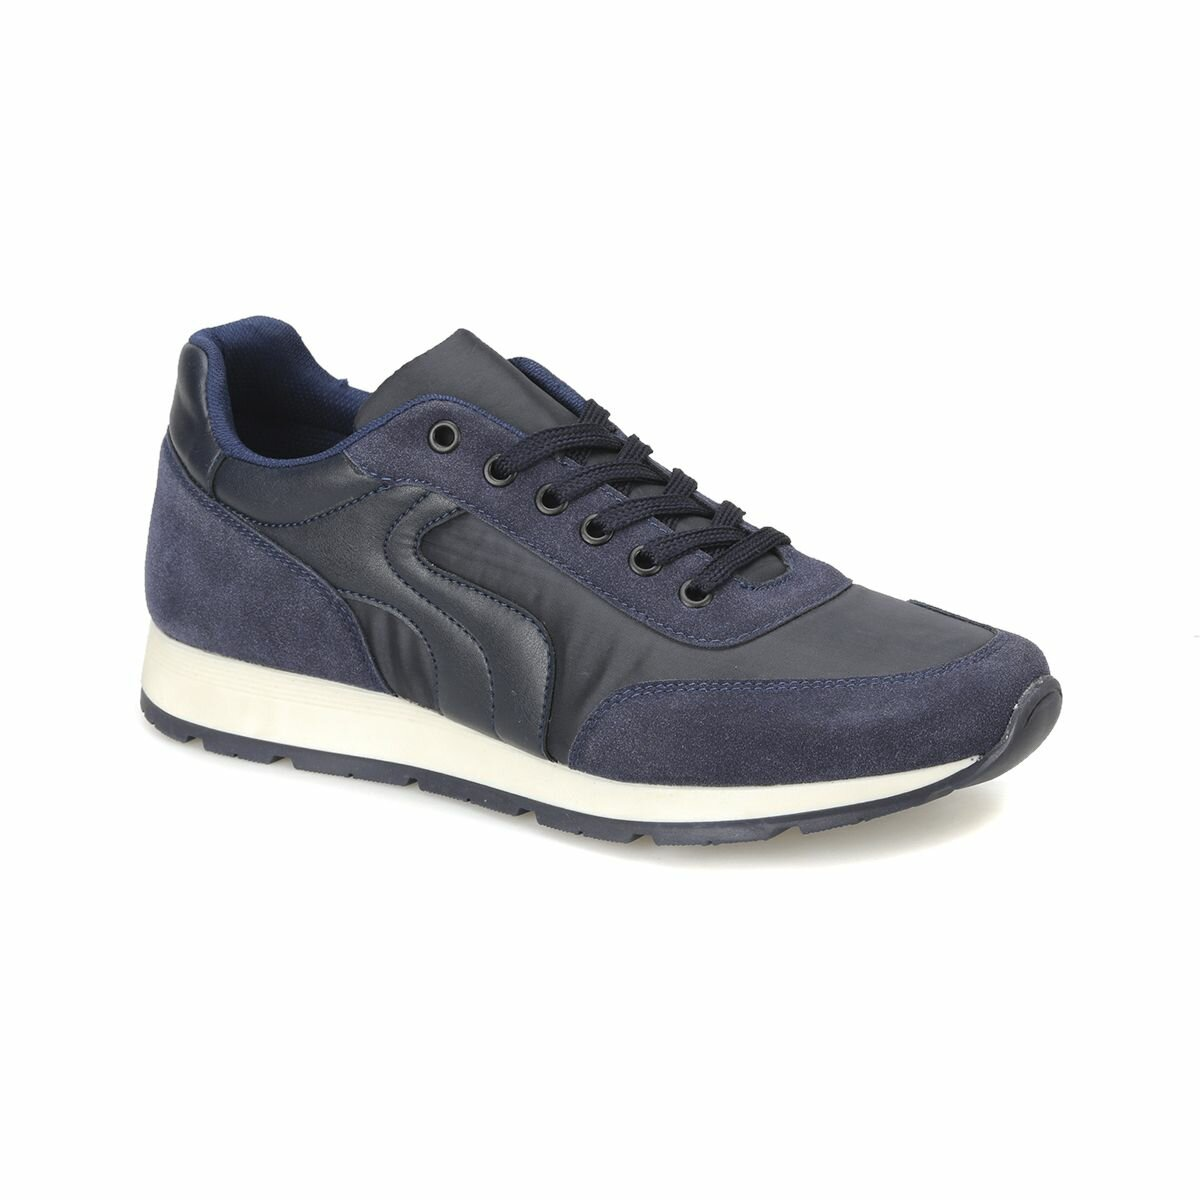 FLO 2609-10 Navy Blue Men 'S Shoes Forester